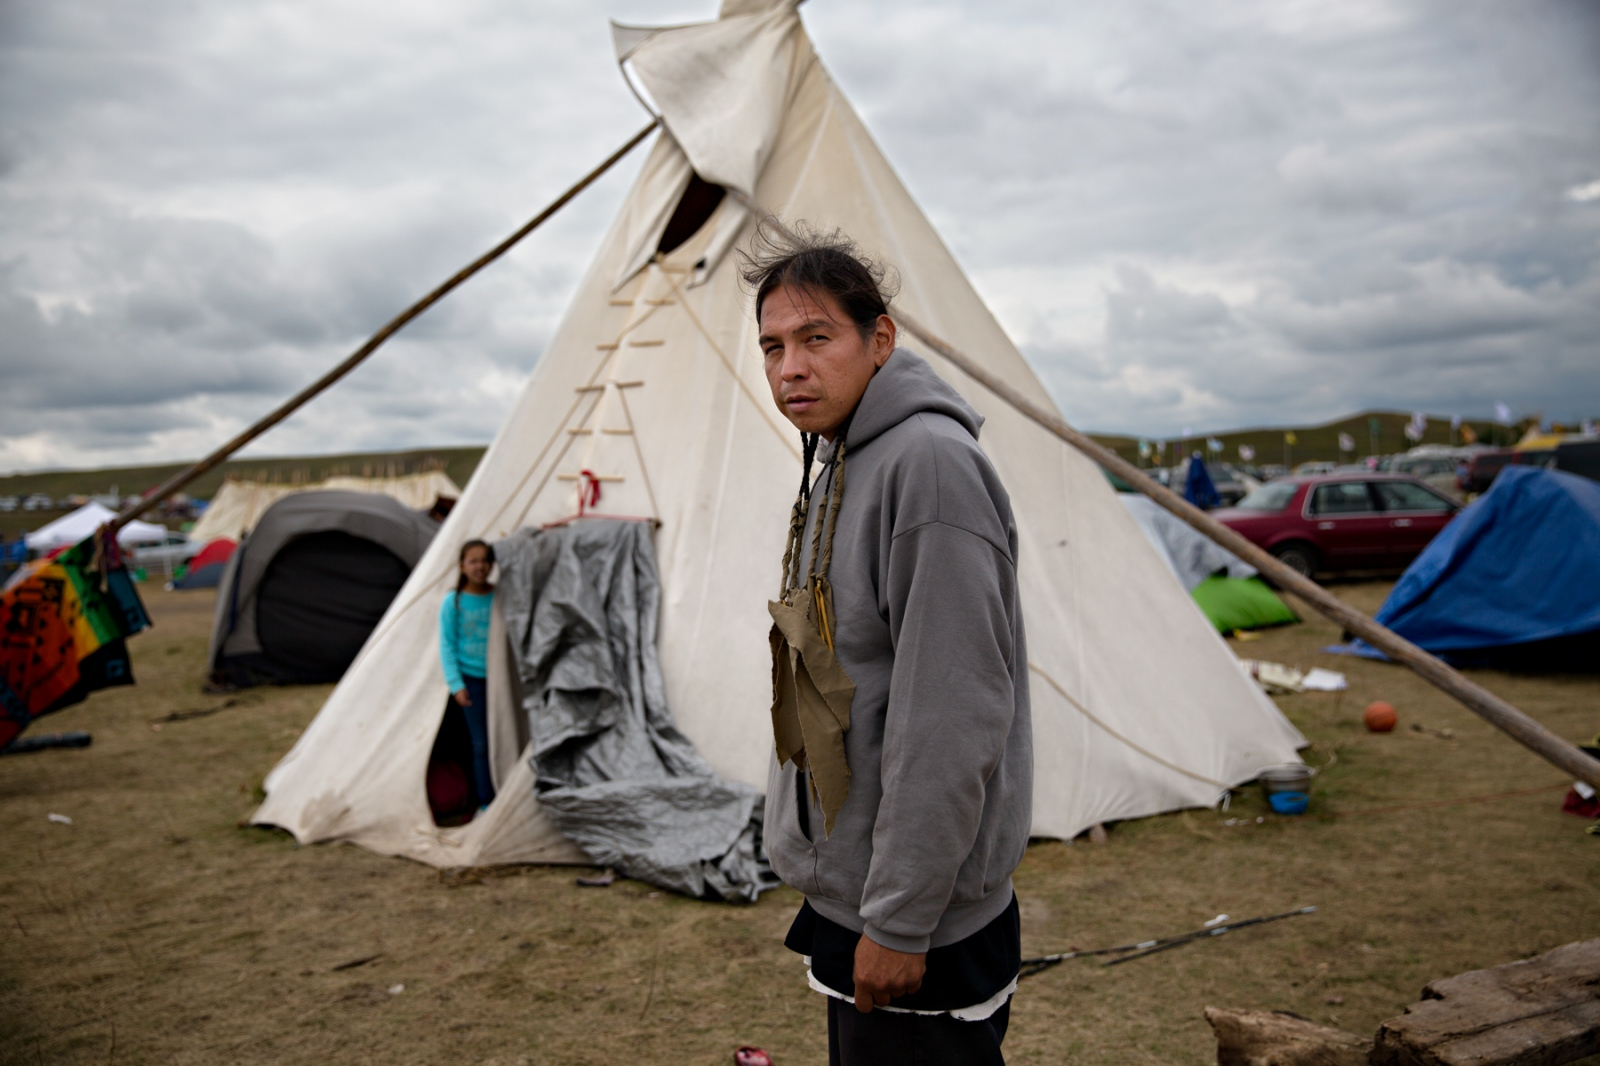 September 9, 2016- Cannon Ball, North Dakota, United States:John Swiftbird from Pine Ridge Reservation in South Dakota and his daughter stand in front of their tippie-he will remain at the Oceti Sakowin Camp until the work on the pipeline is stopped forever.